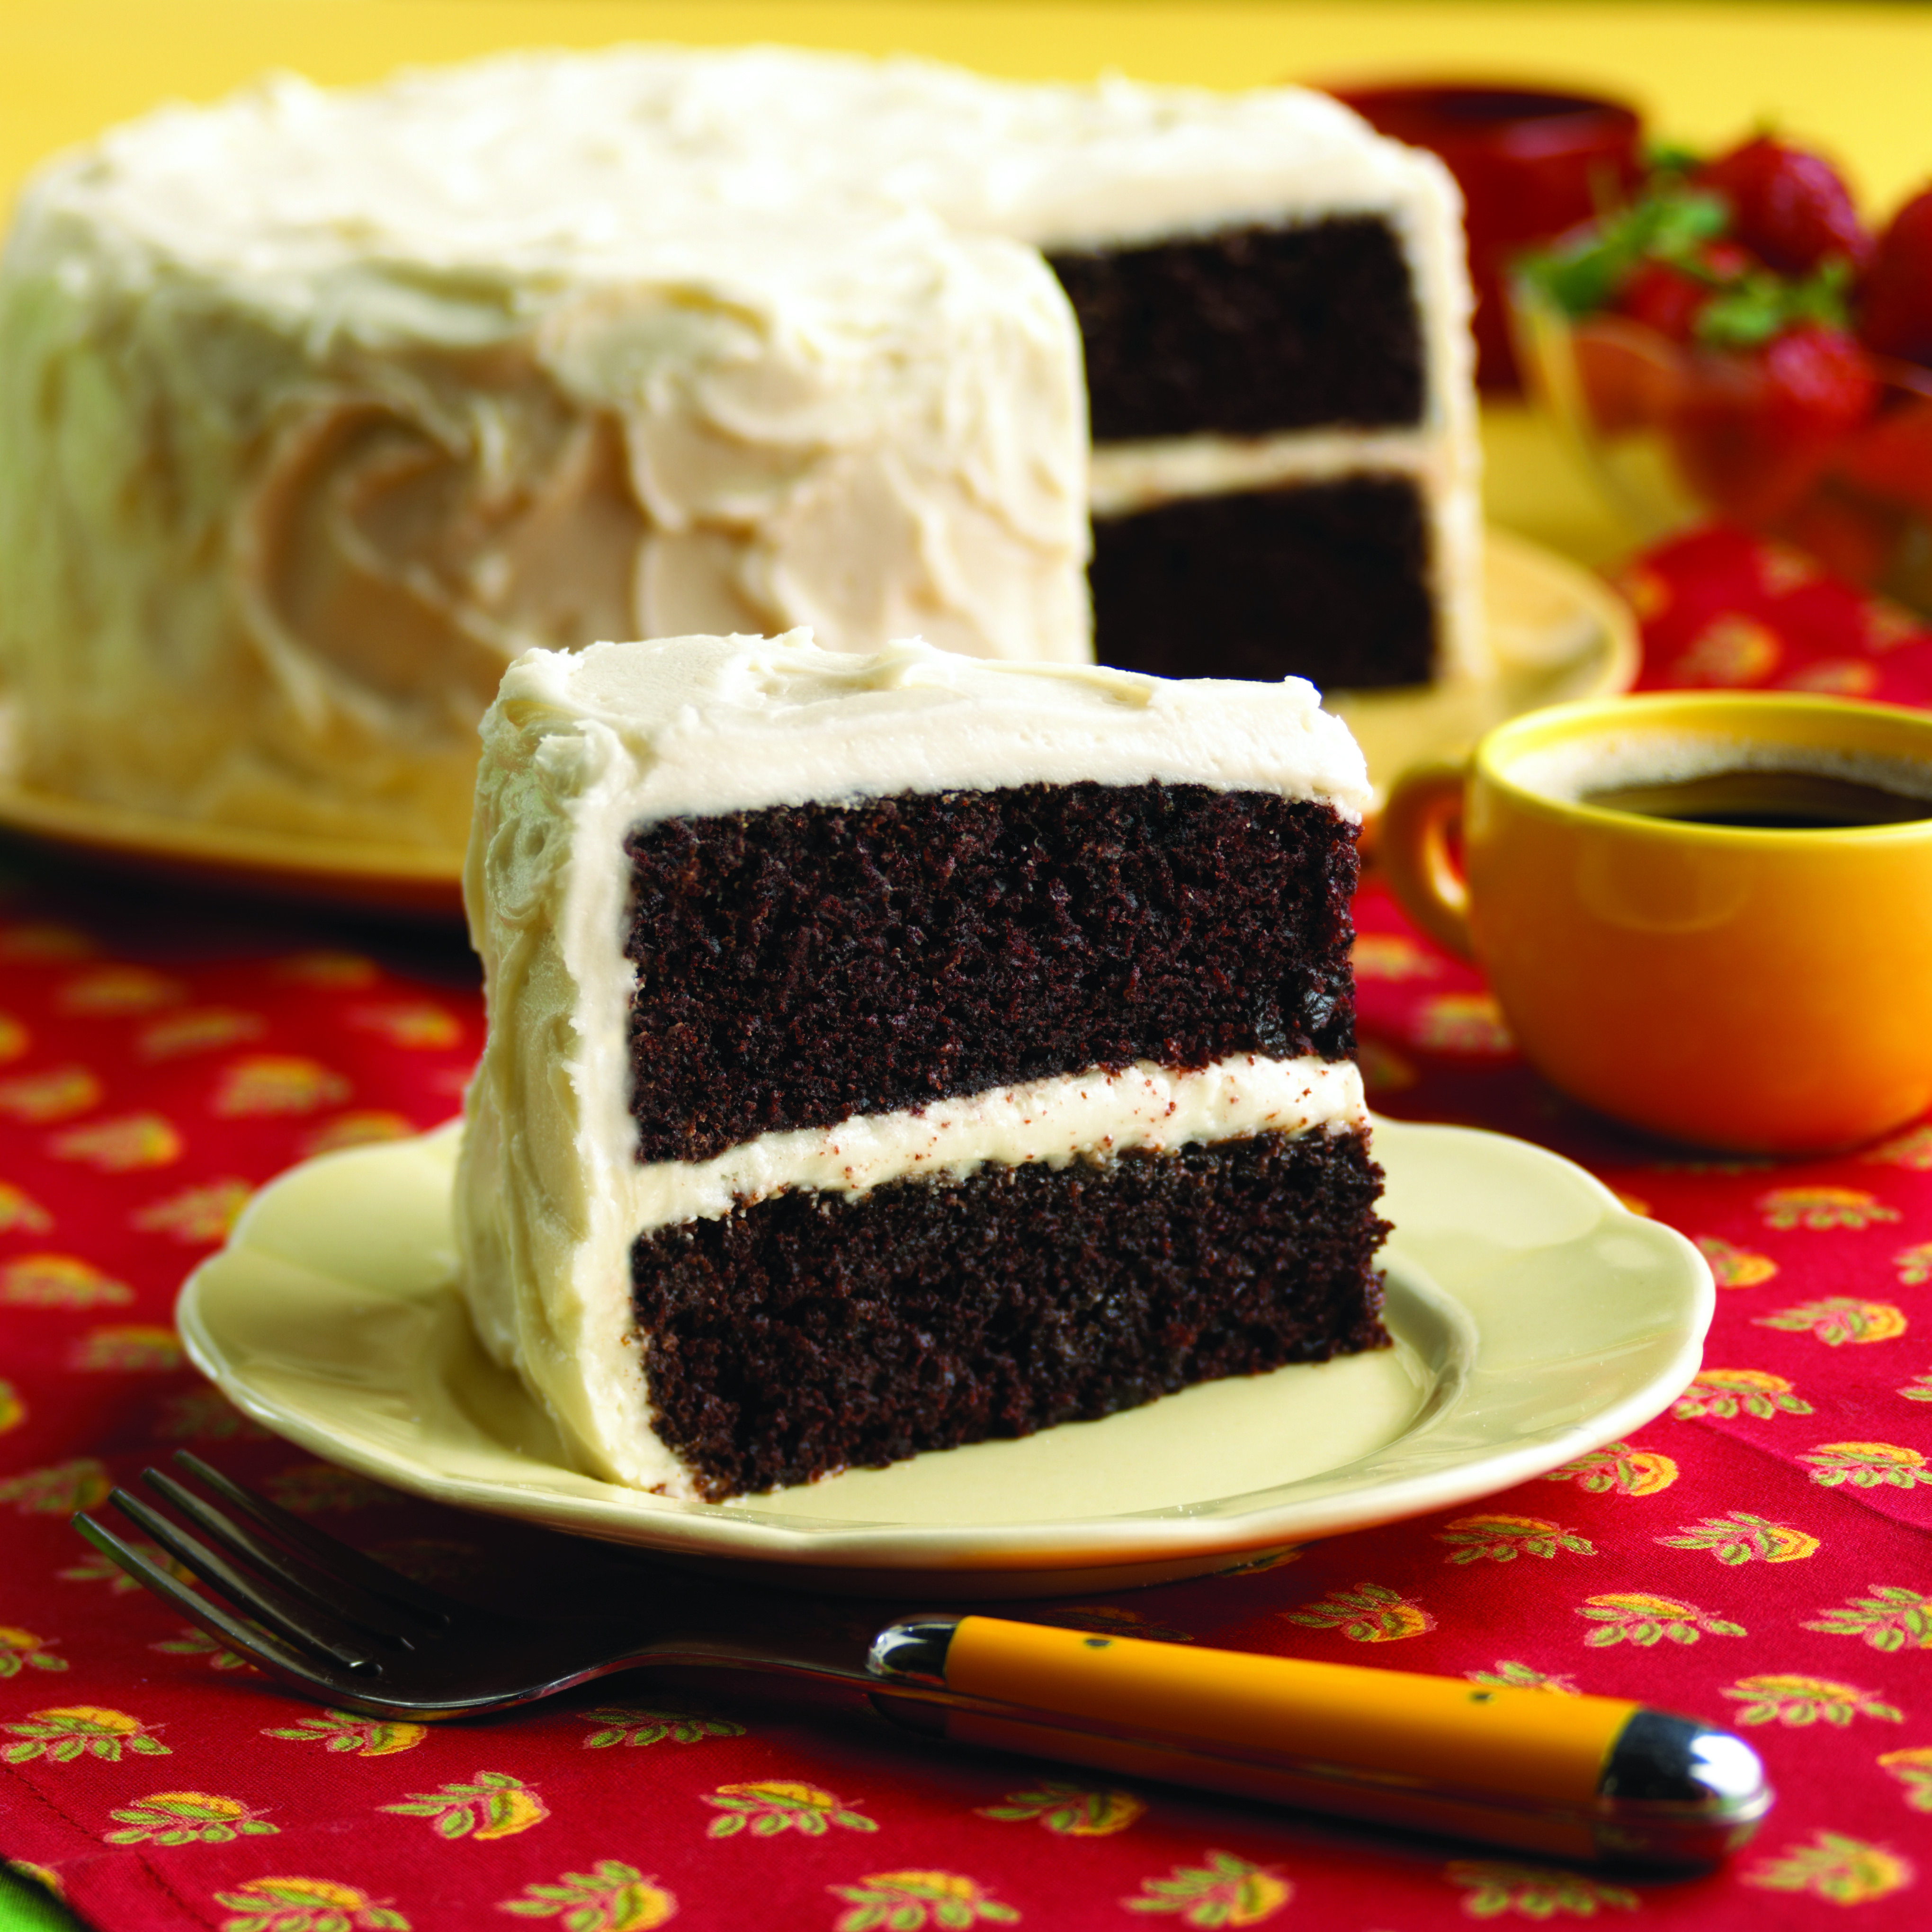 Deep, dark #chocolate #cake under brilliant white sour #cream frosting everyone will want to save room for this rich, dramatic #dessert